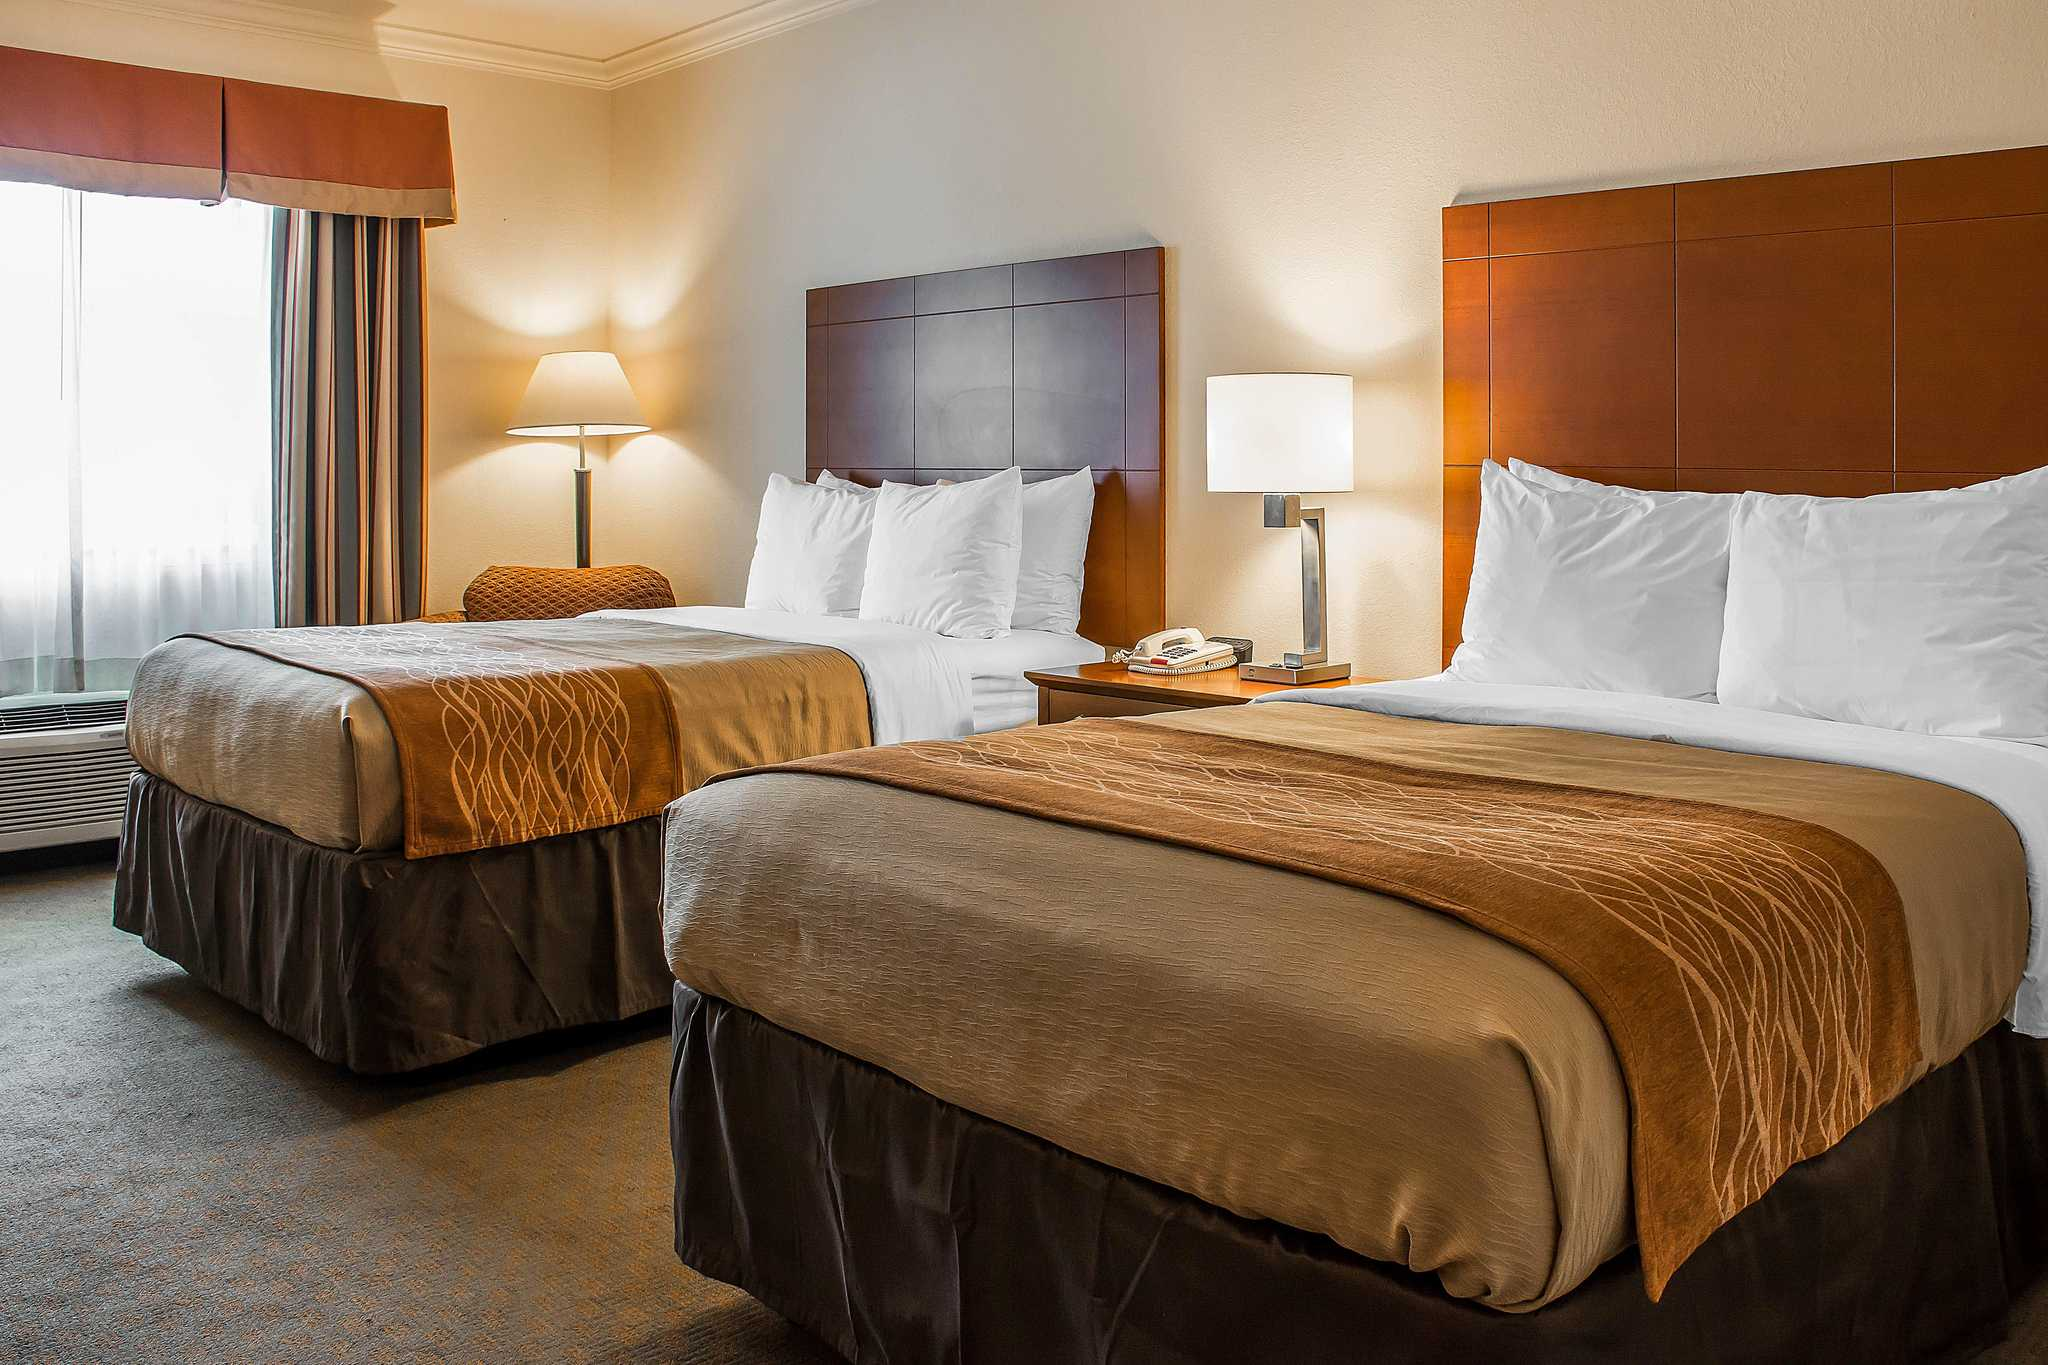 Comfort inn huntsville al wwwchoicehotelscom for Comfort inn bedding